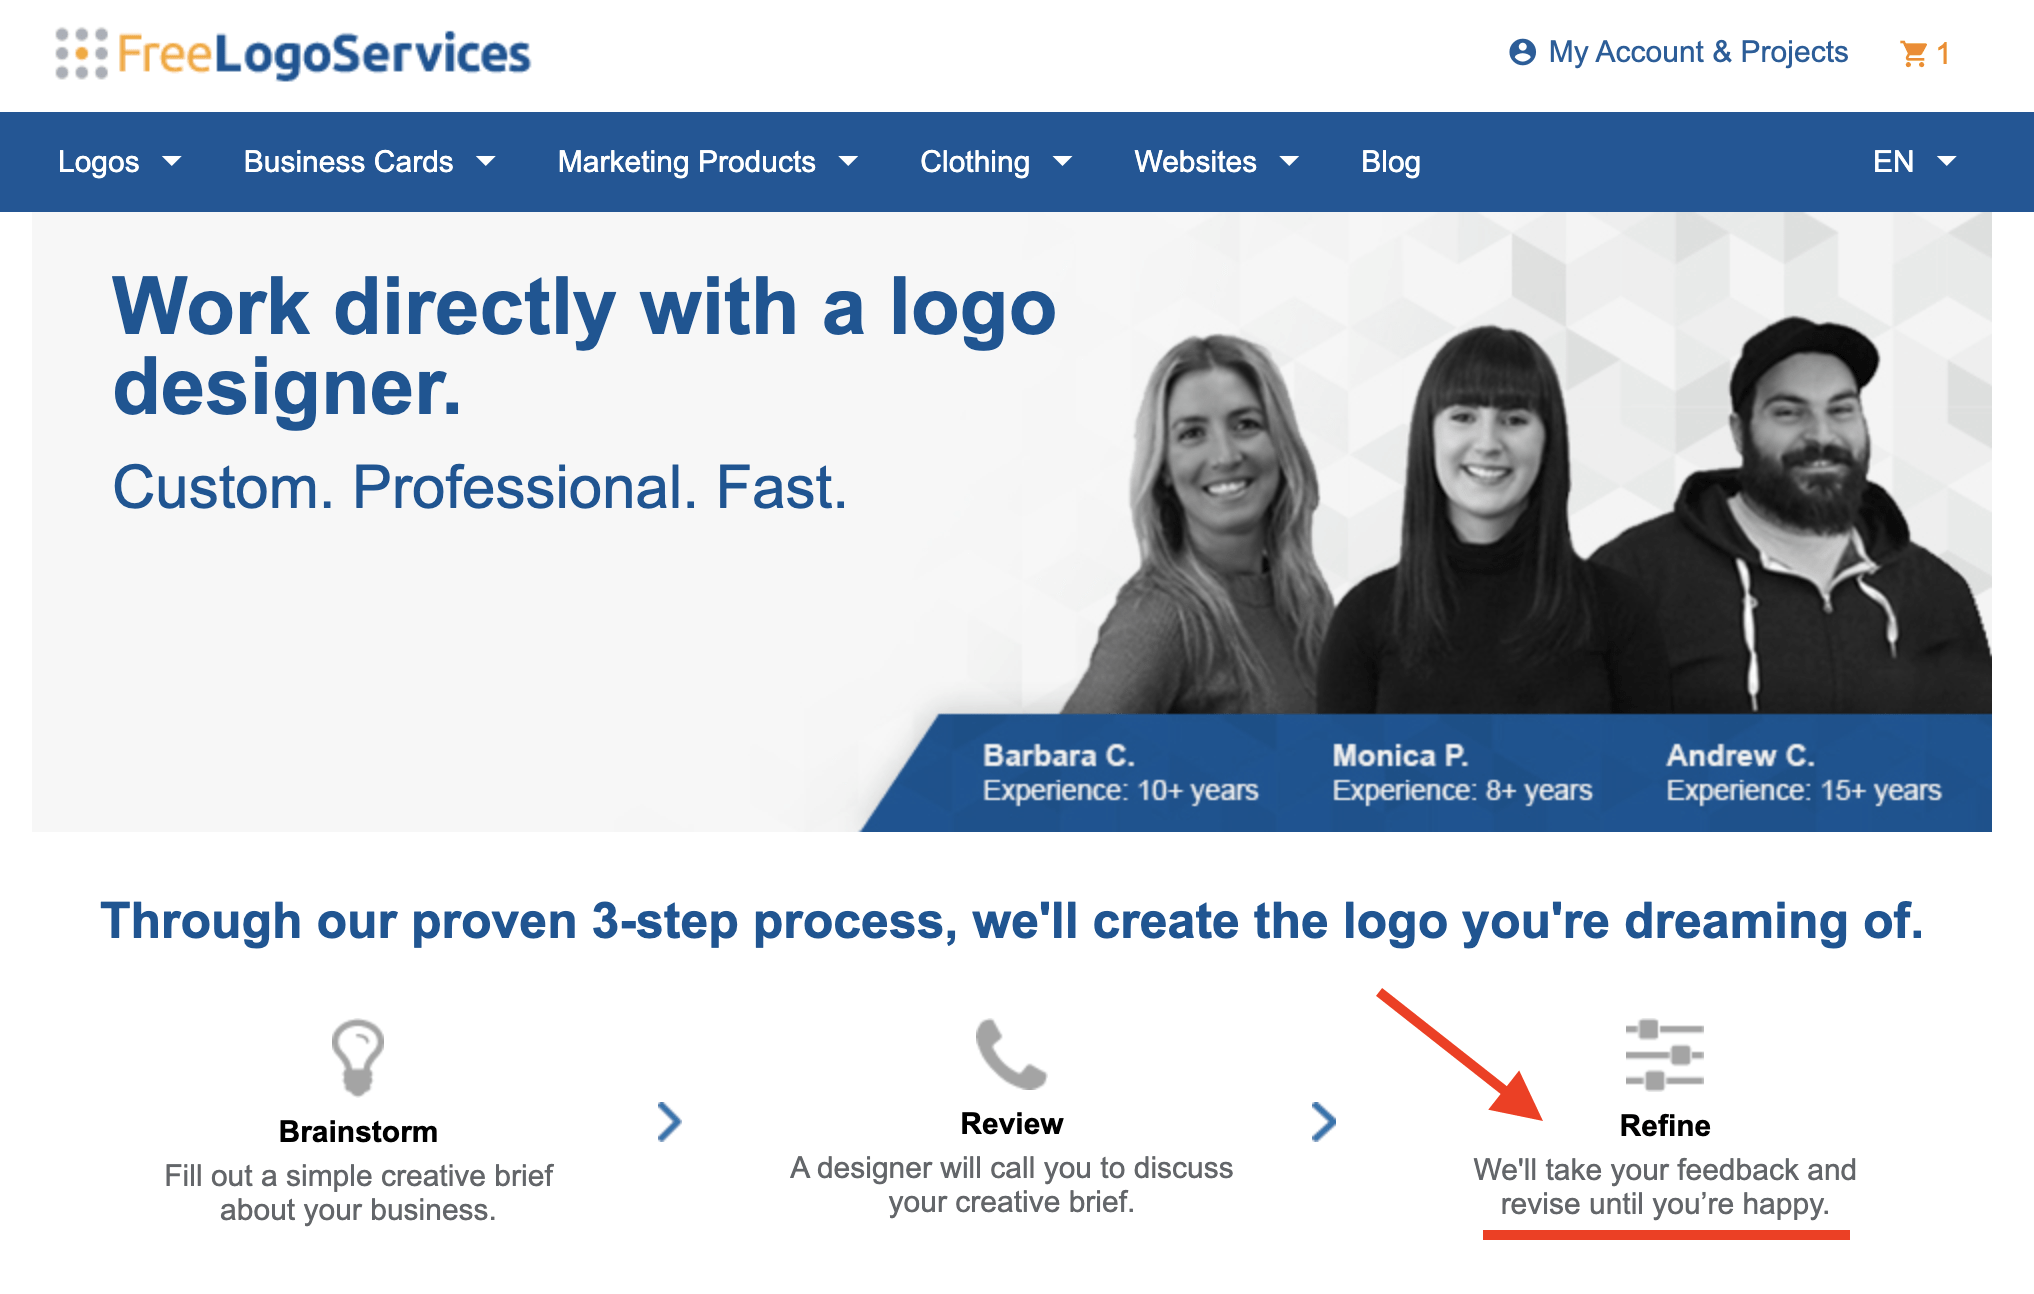 FreeLogoServices review - Work directly with a logo designer